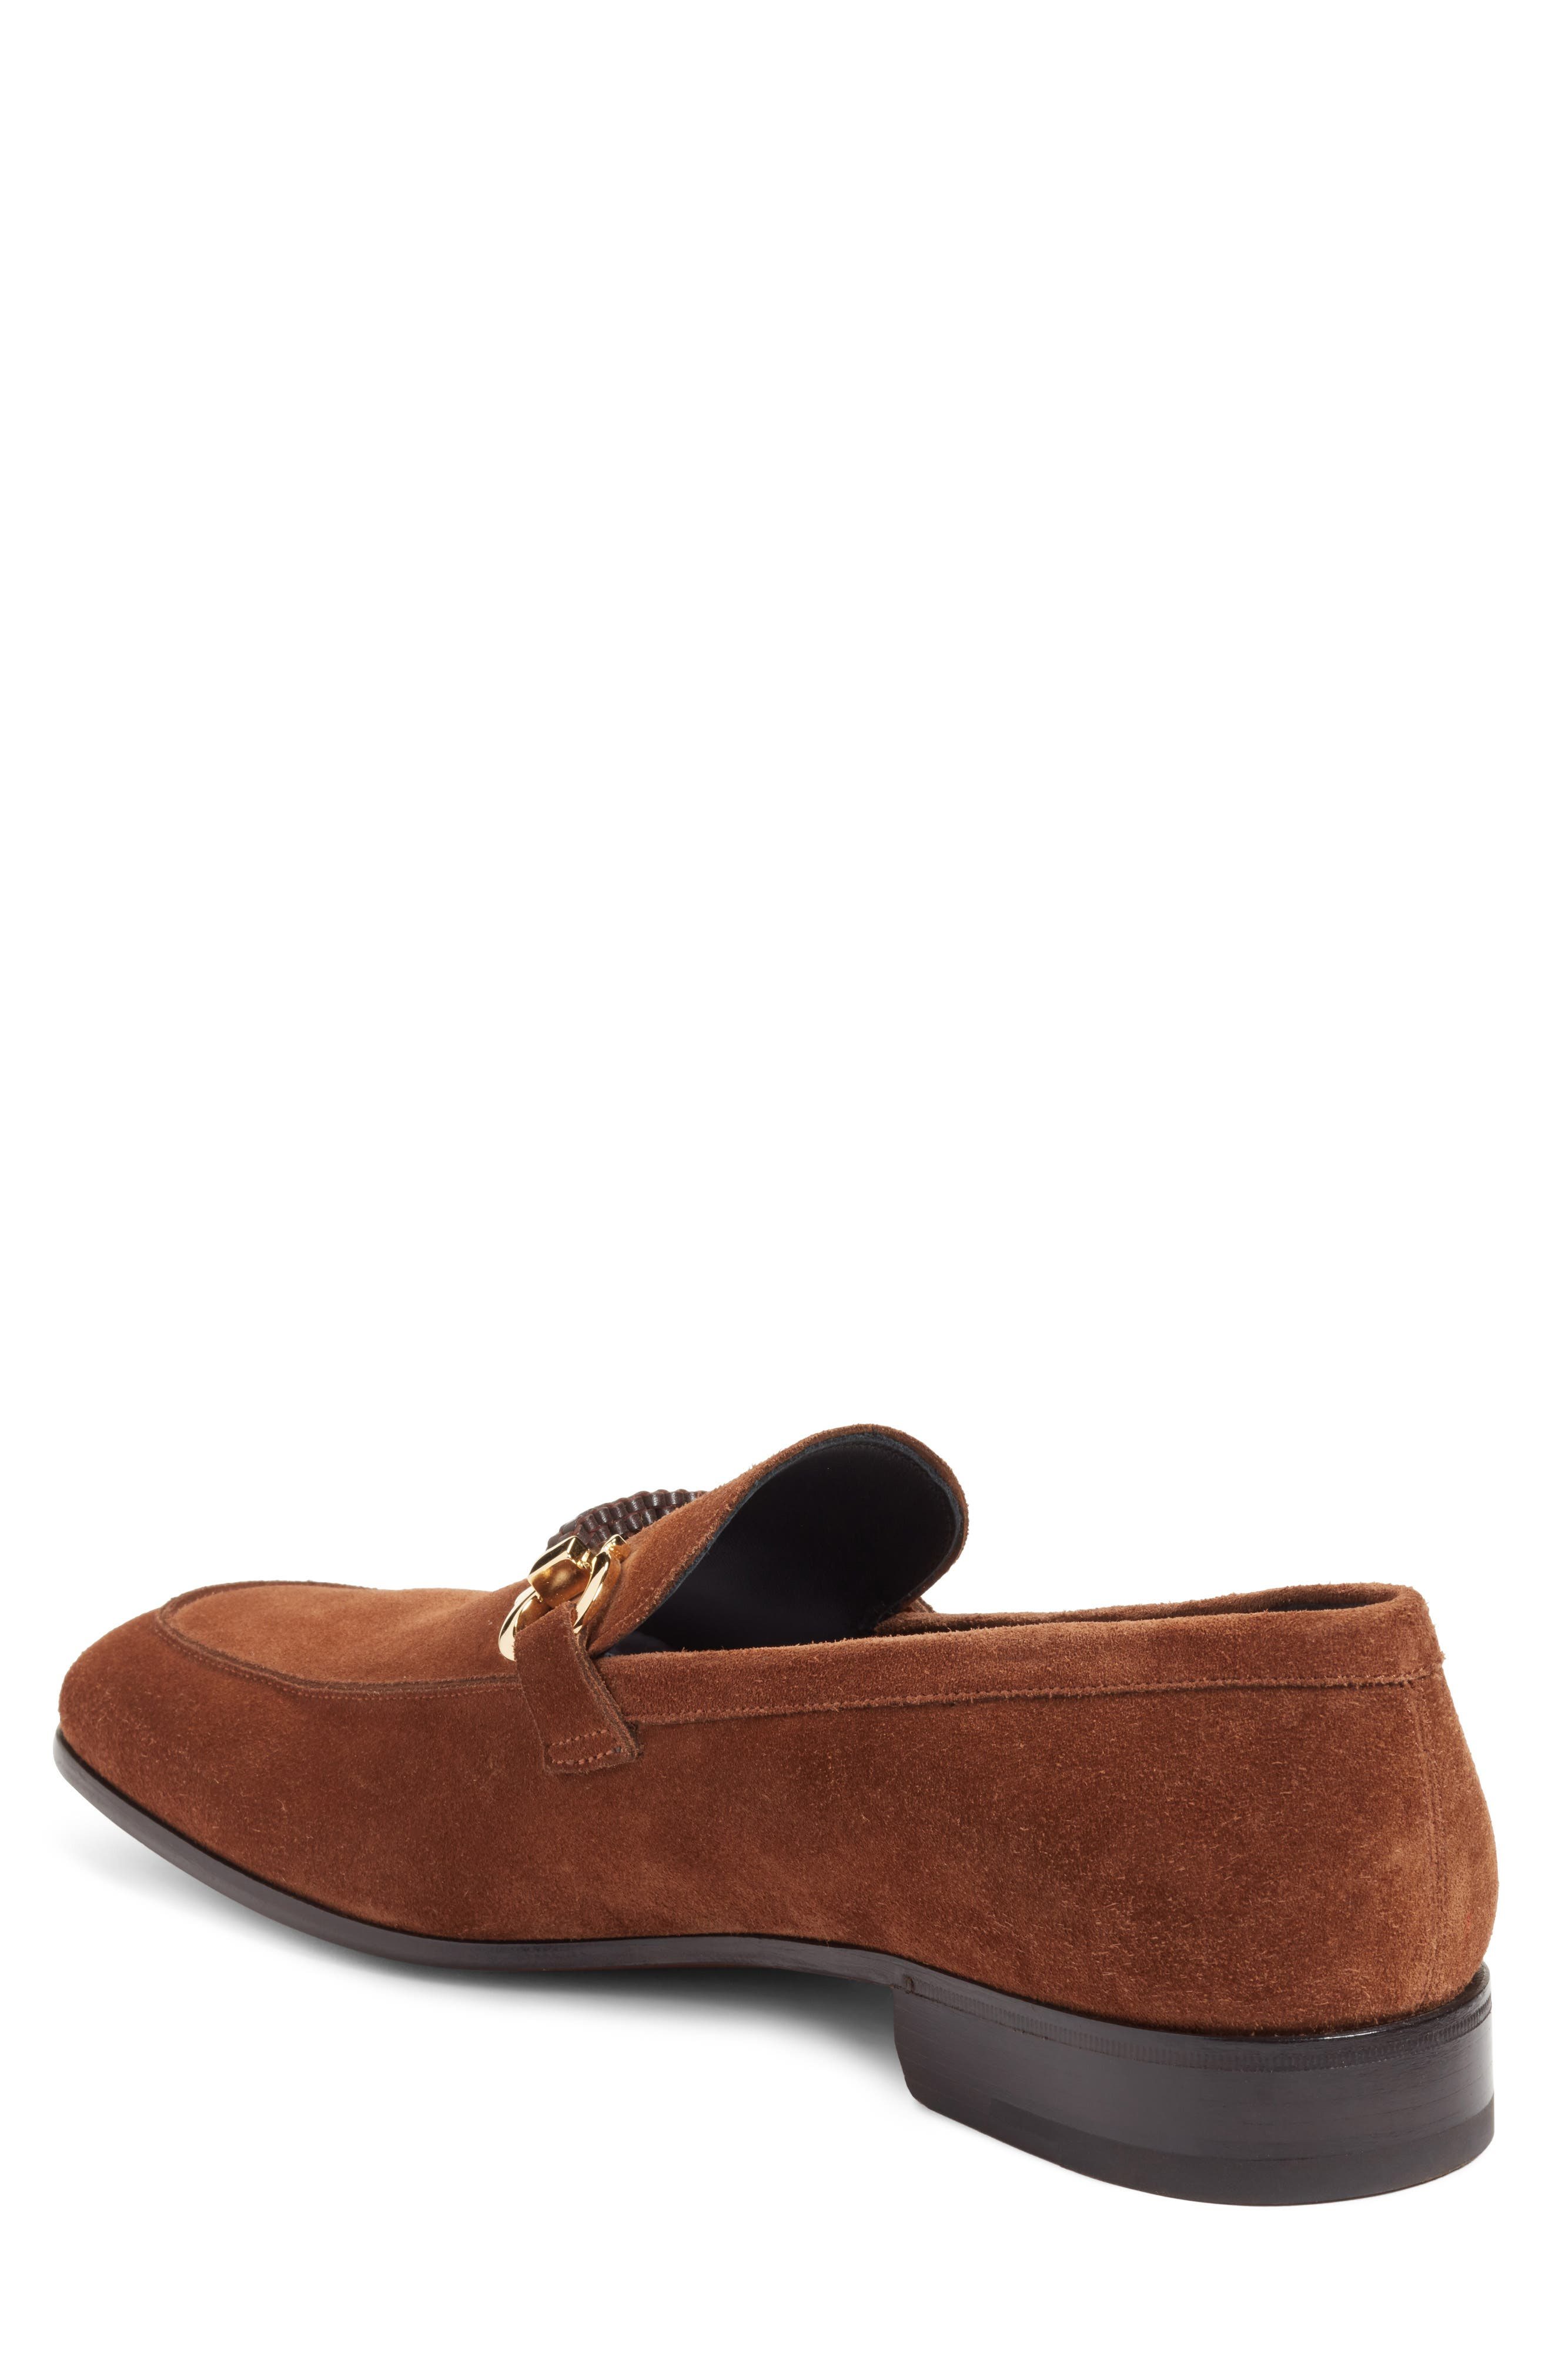 Cross Bit Loafer,                             Alternate thumbnail 3, color,                             Castoro